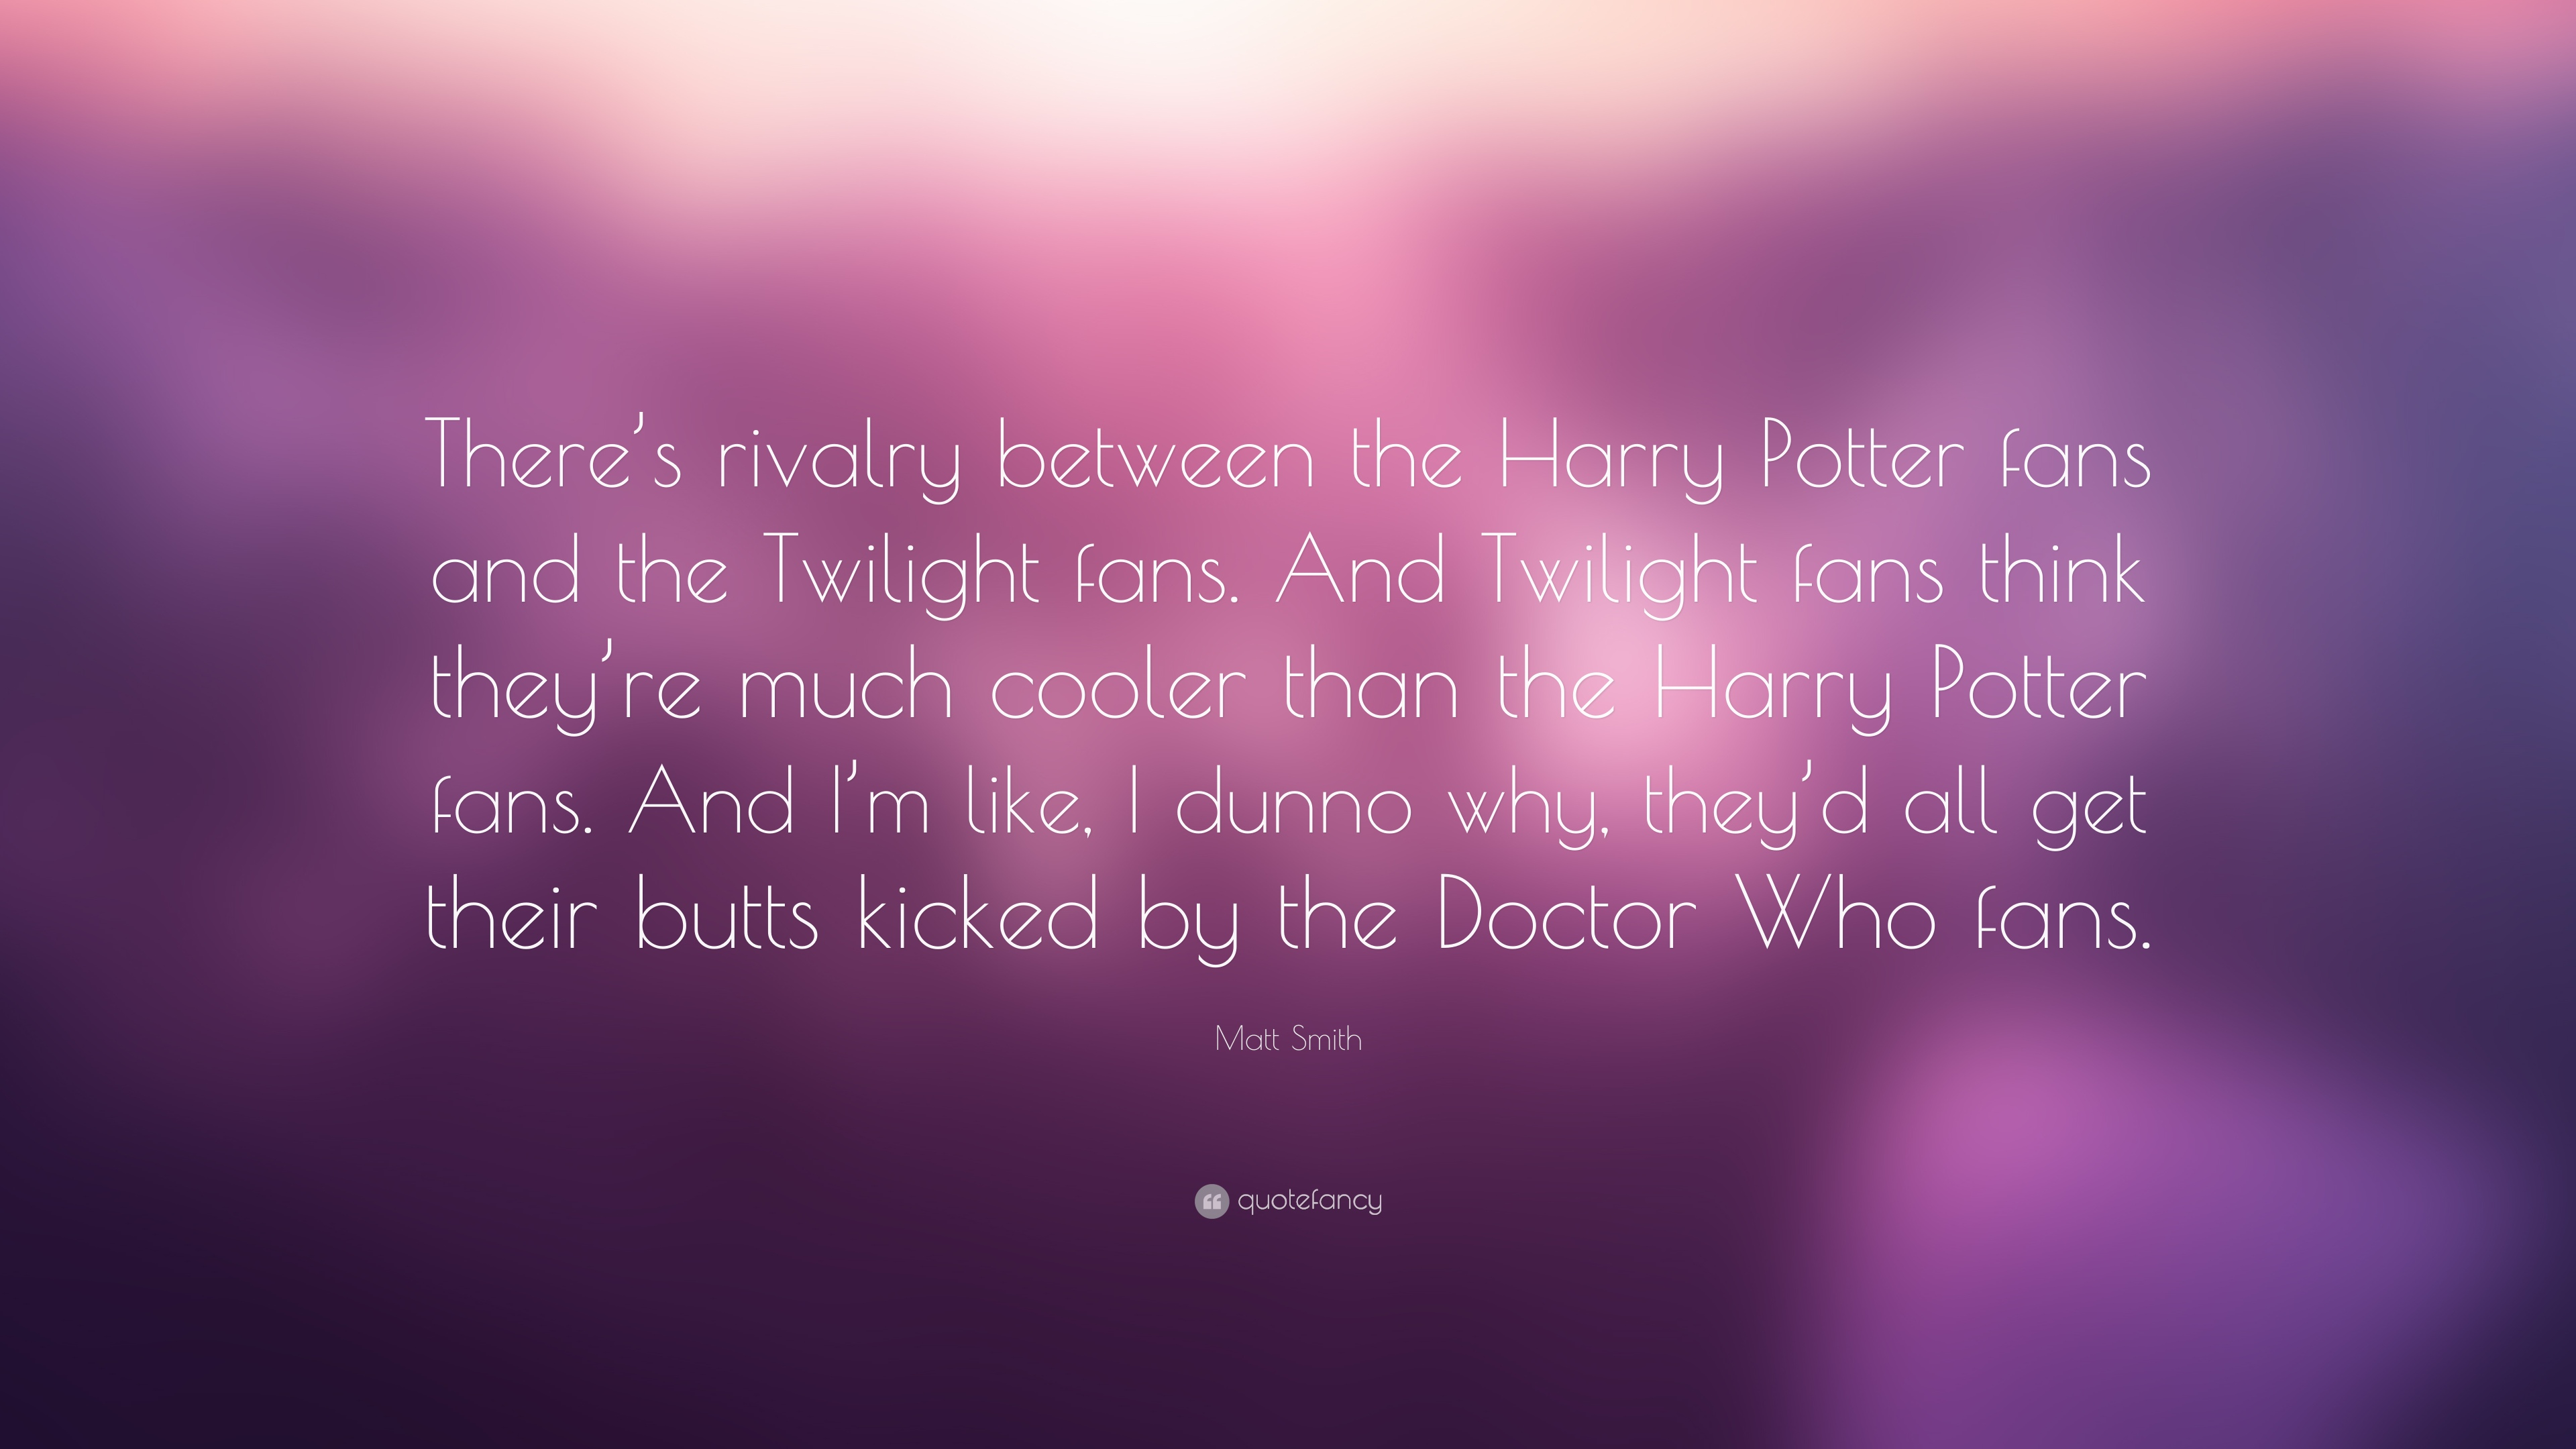 Download Wallpaper Harry Potter Twilight - 1099911-Matt-Smith-Quote-There-s-rivalry-between-the-Harry-Potter-fans-and  Pictures_543580.jpg